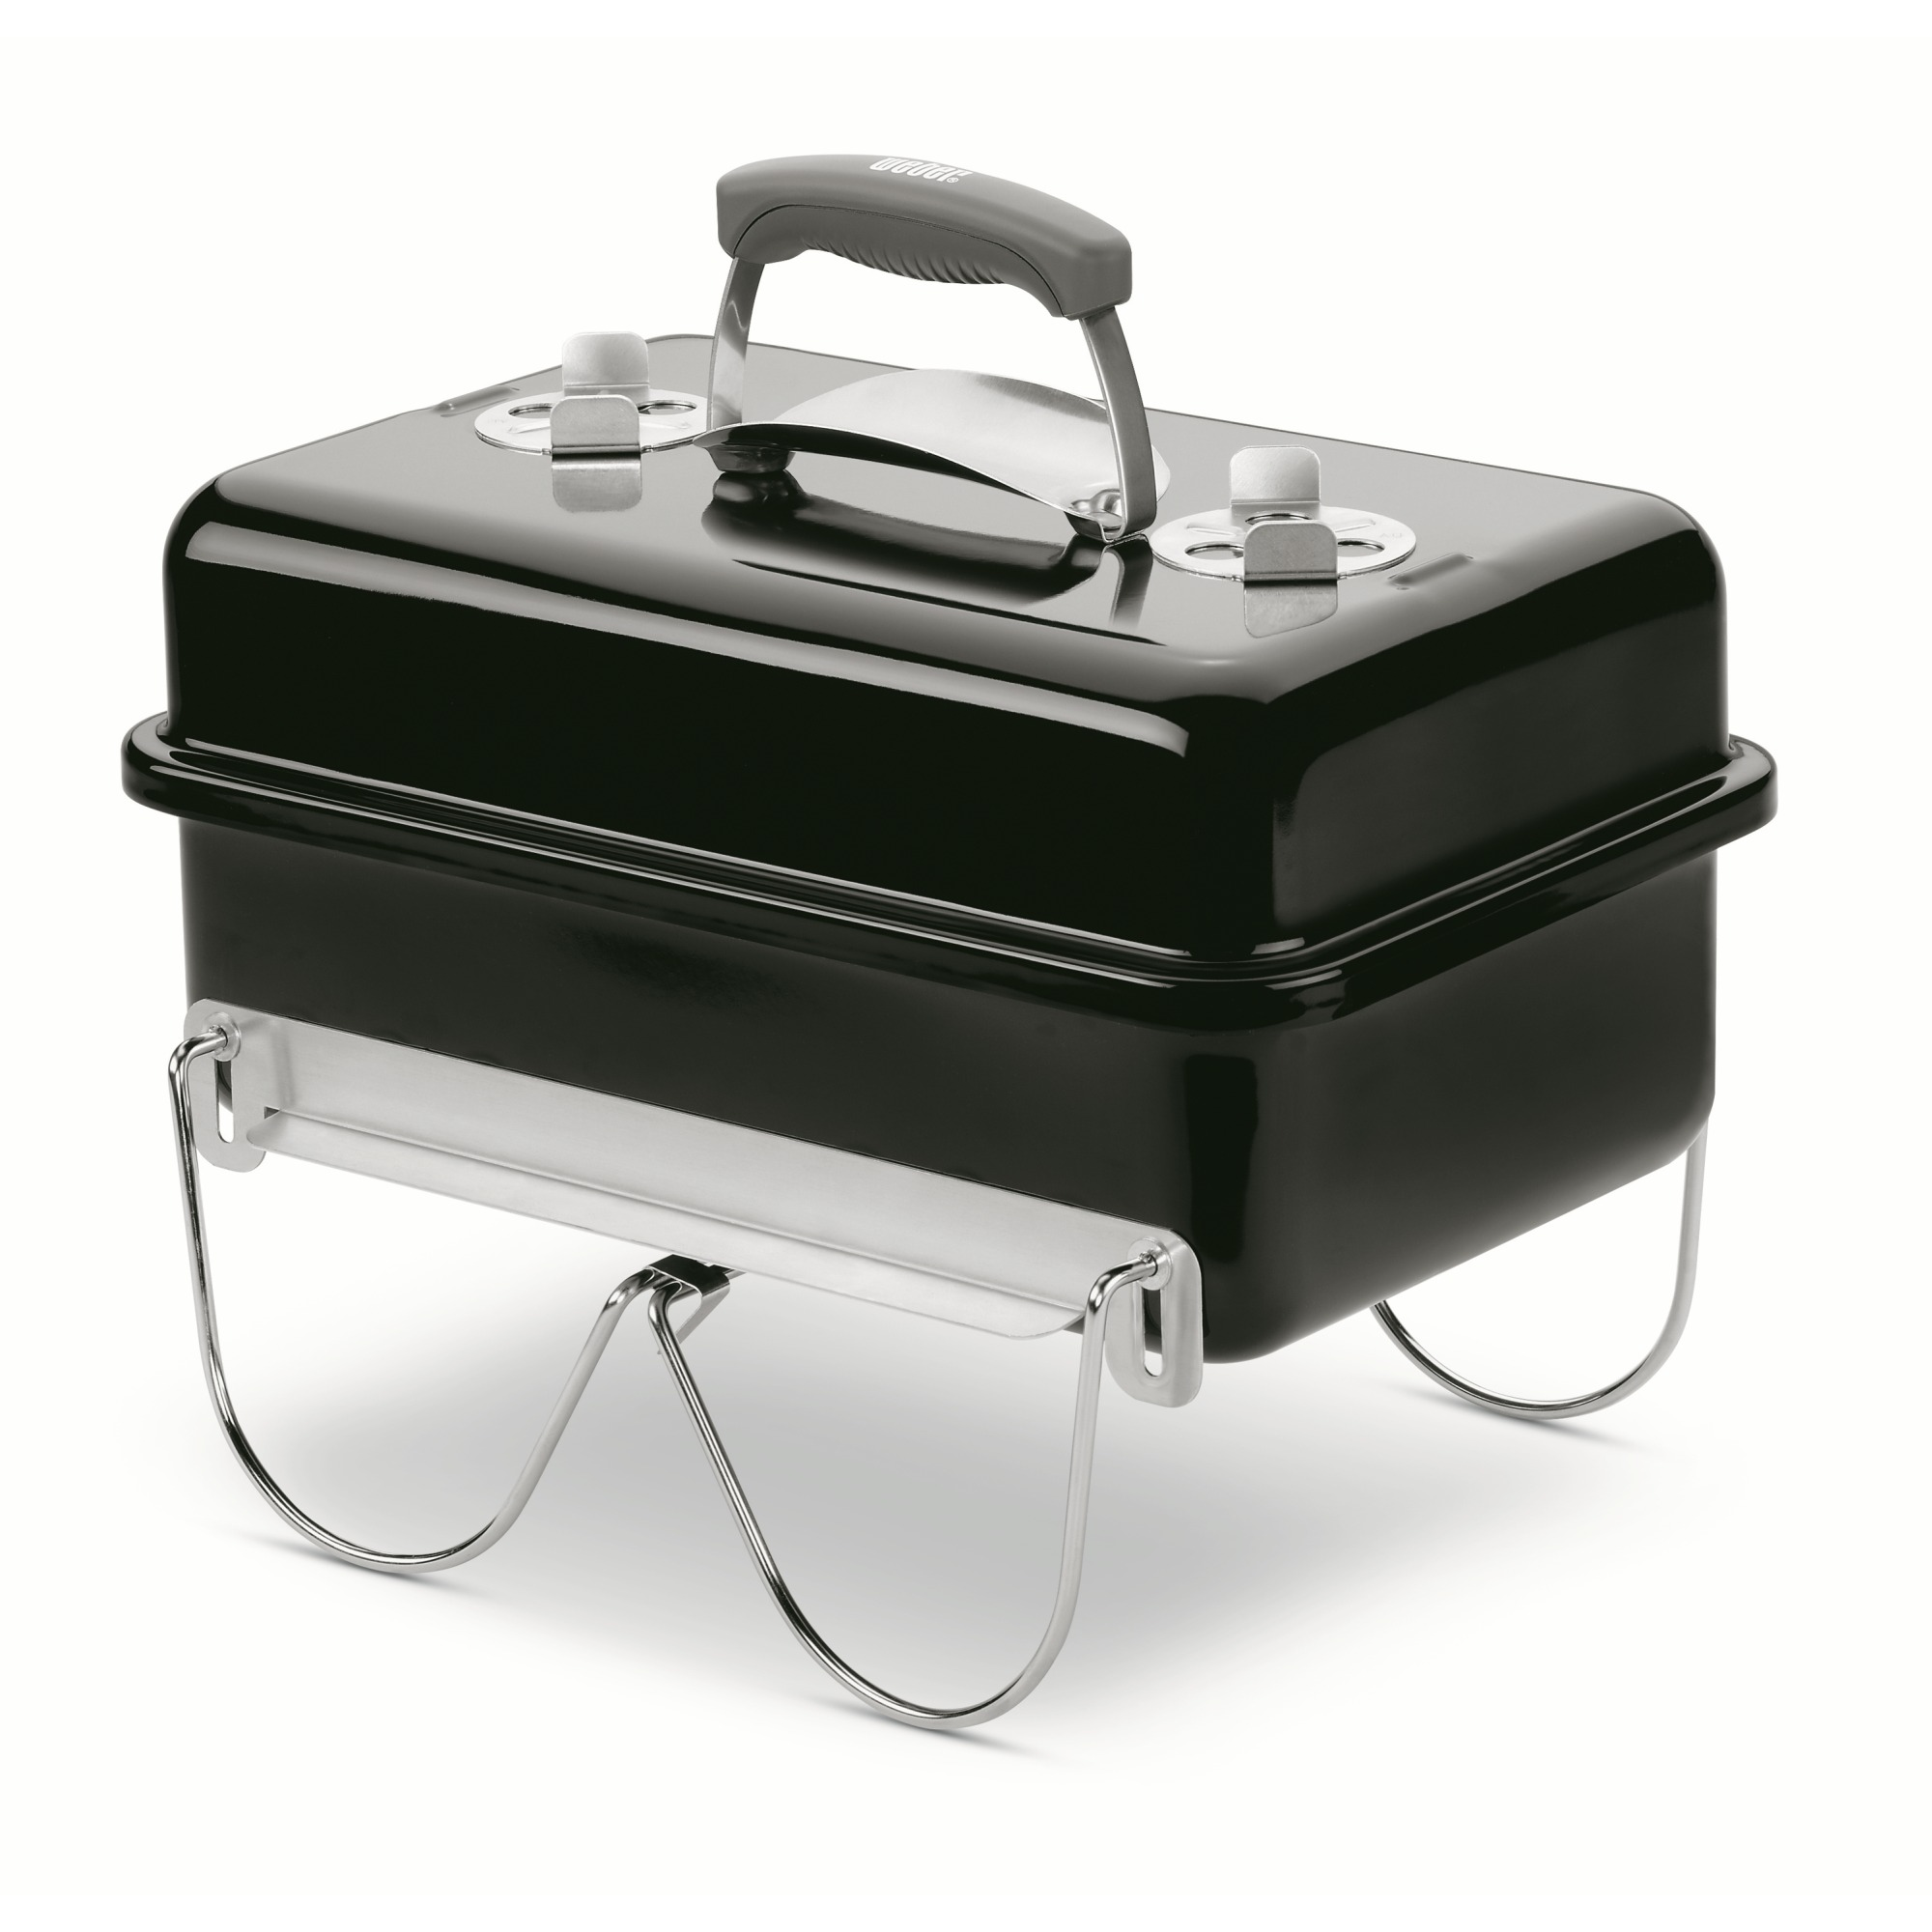 Weber Go-anywhere Houtskoolbarbecue